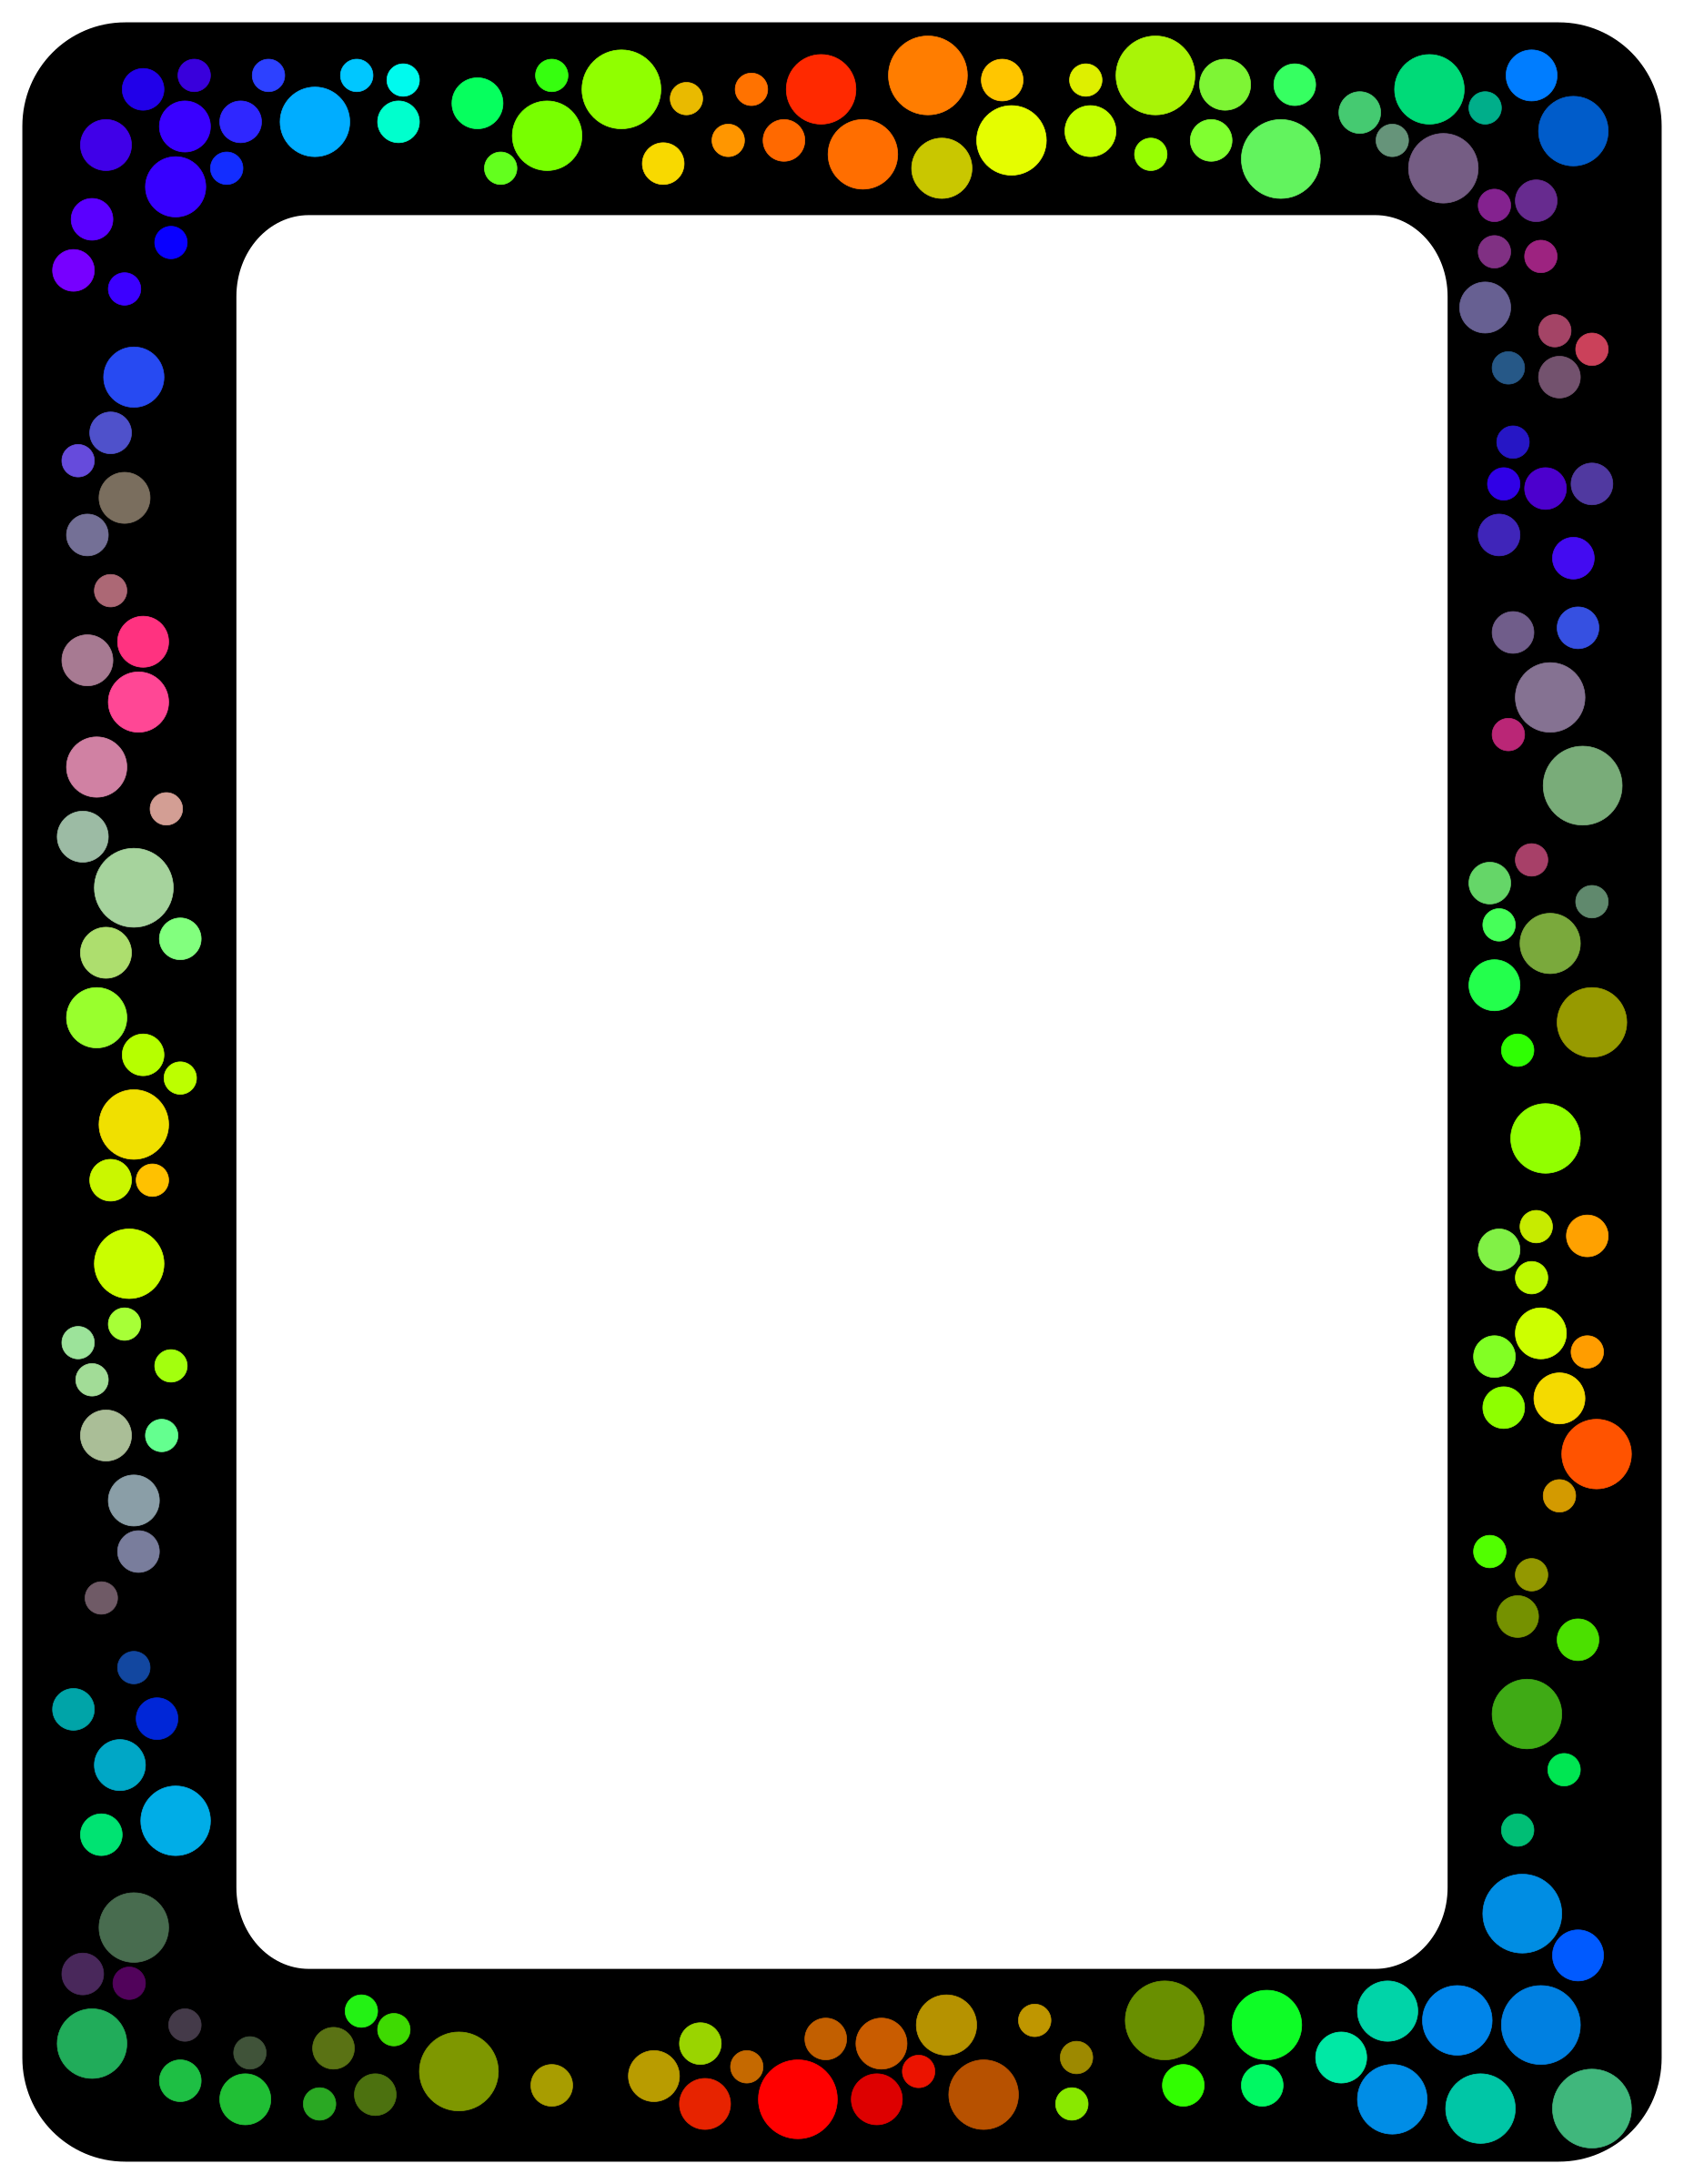 Colorful border png. Clipart dot big image